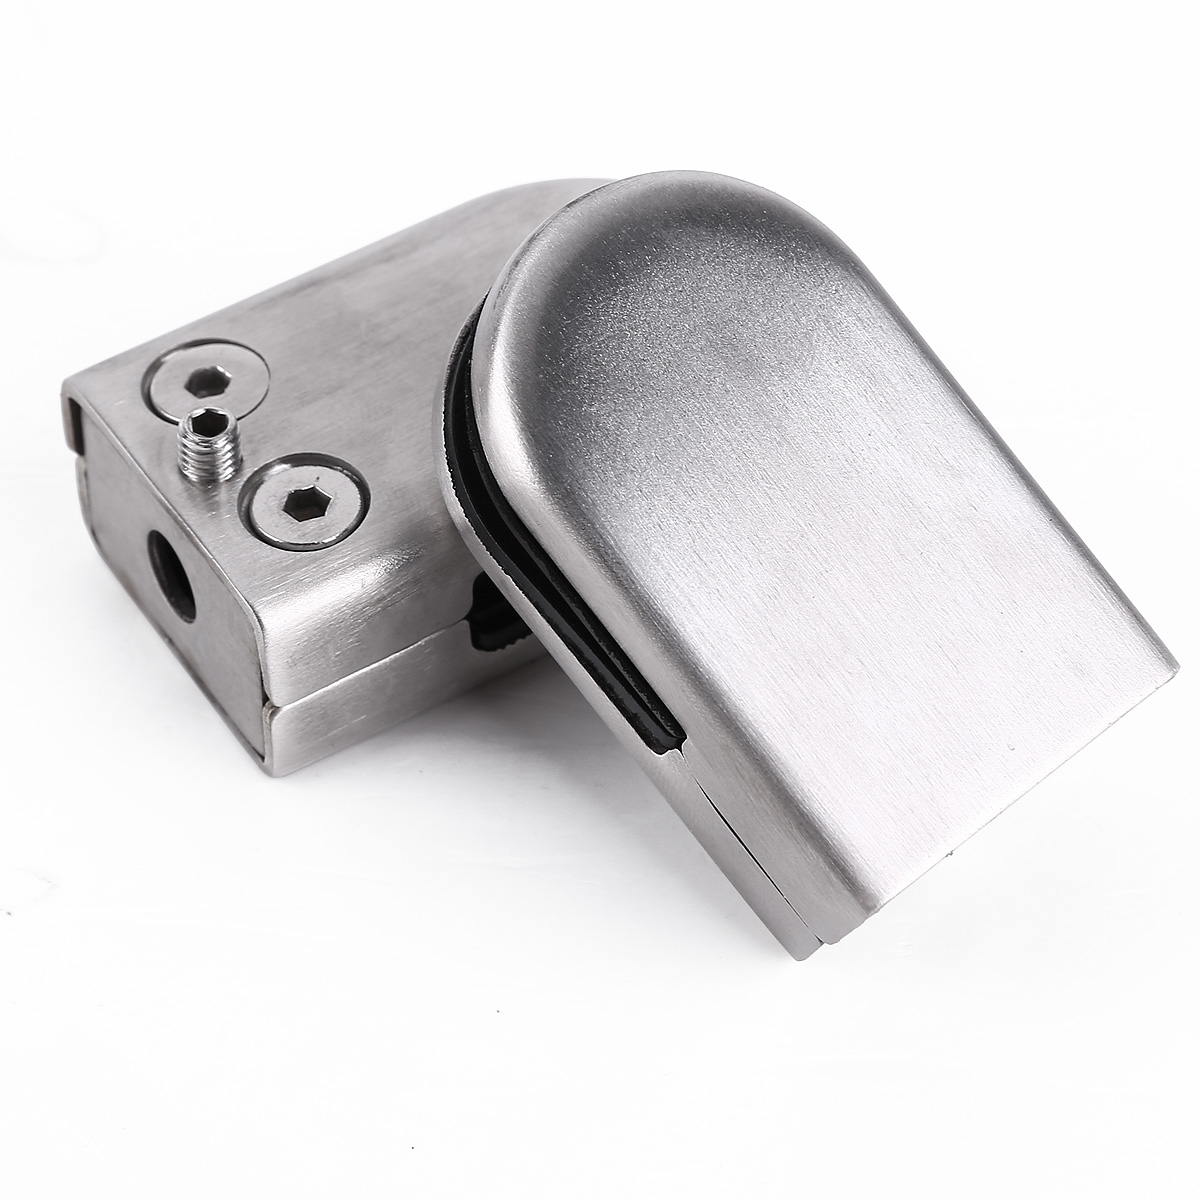 Stainless steel glass clamps clips handrail